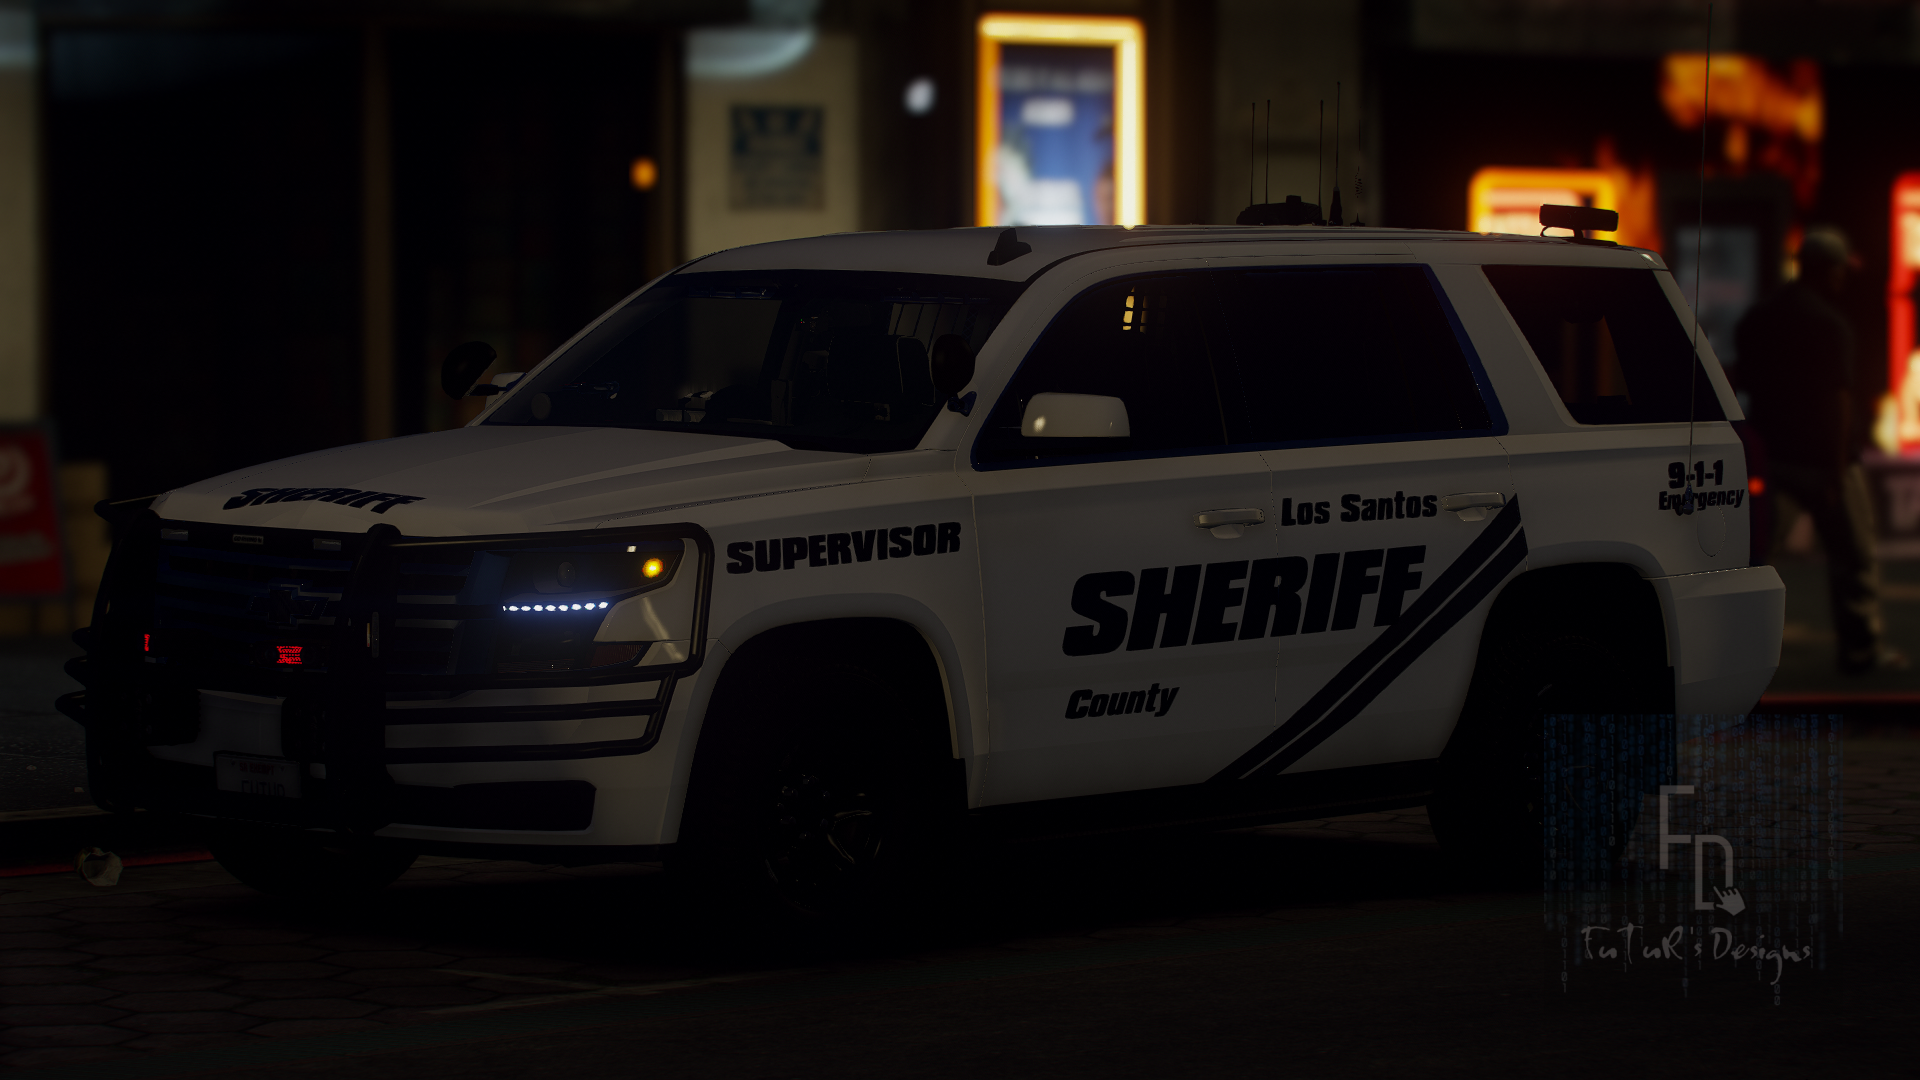 Grand_Theft_Auto_V_10_09_2021_21_40_47.png